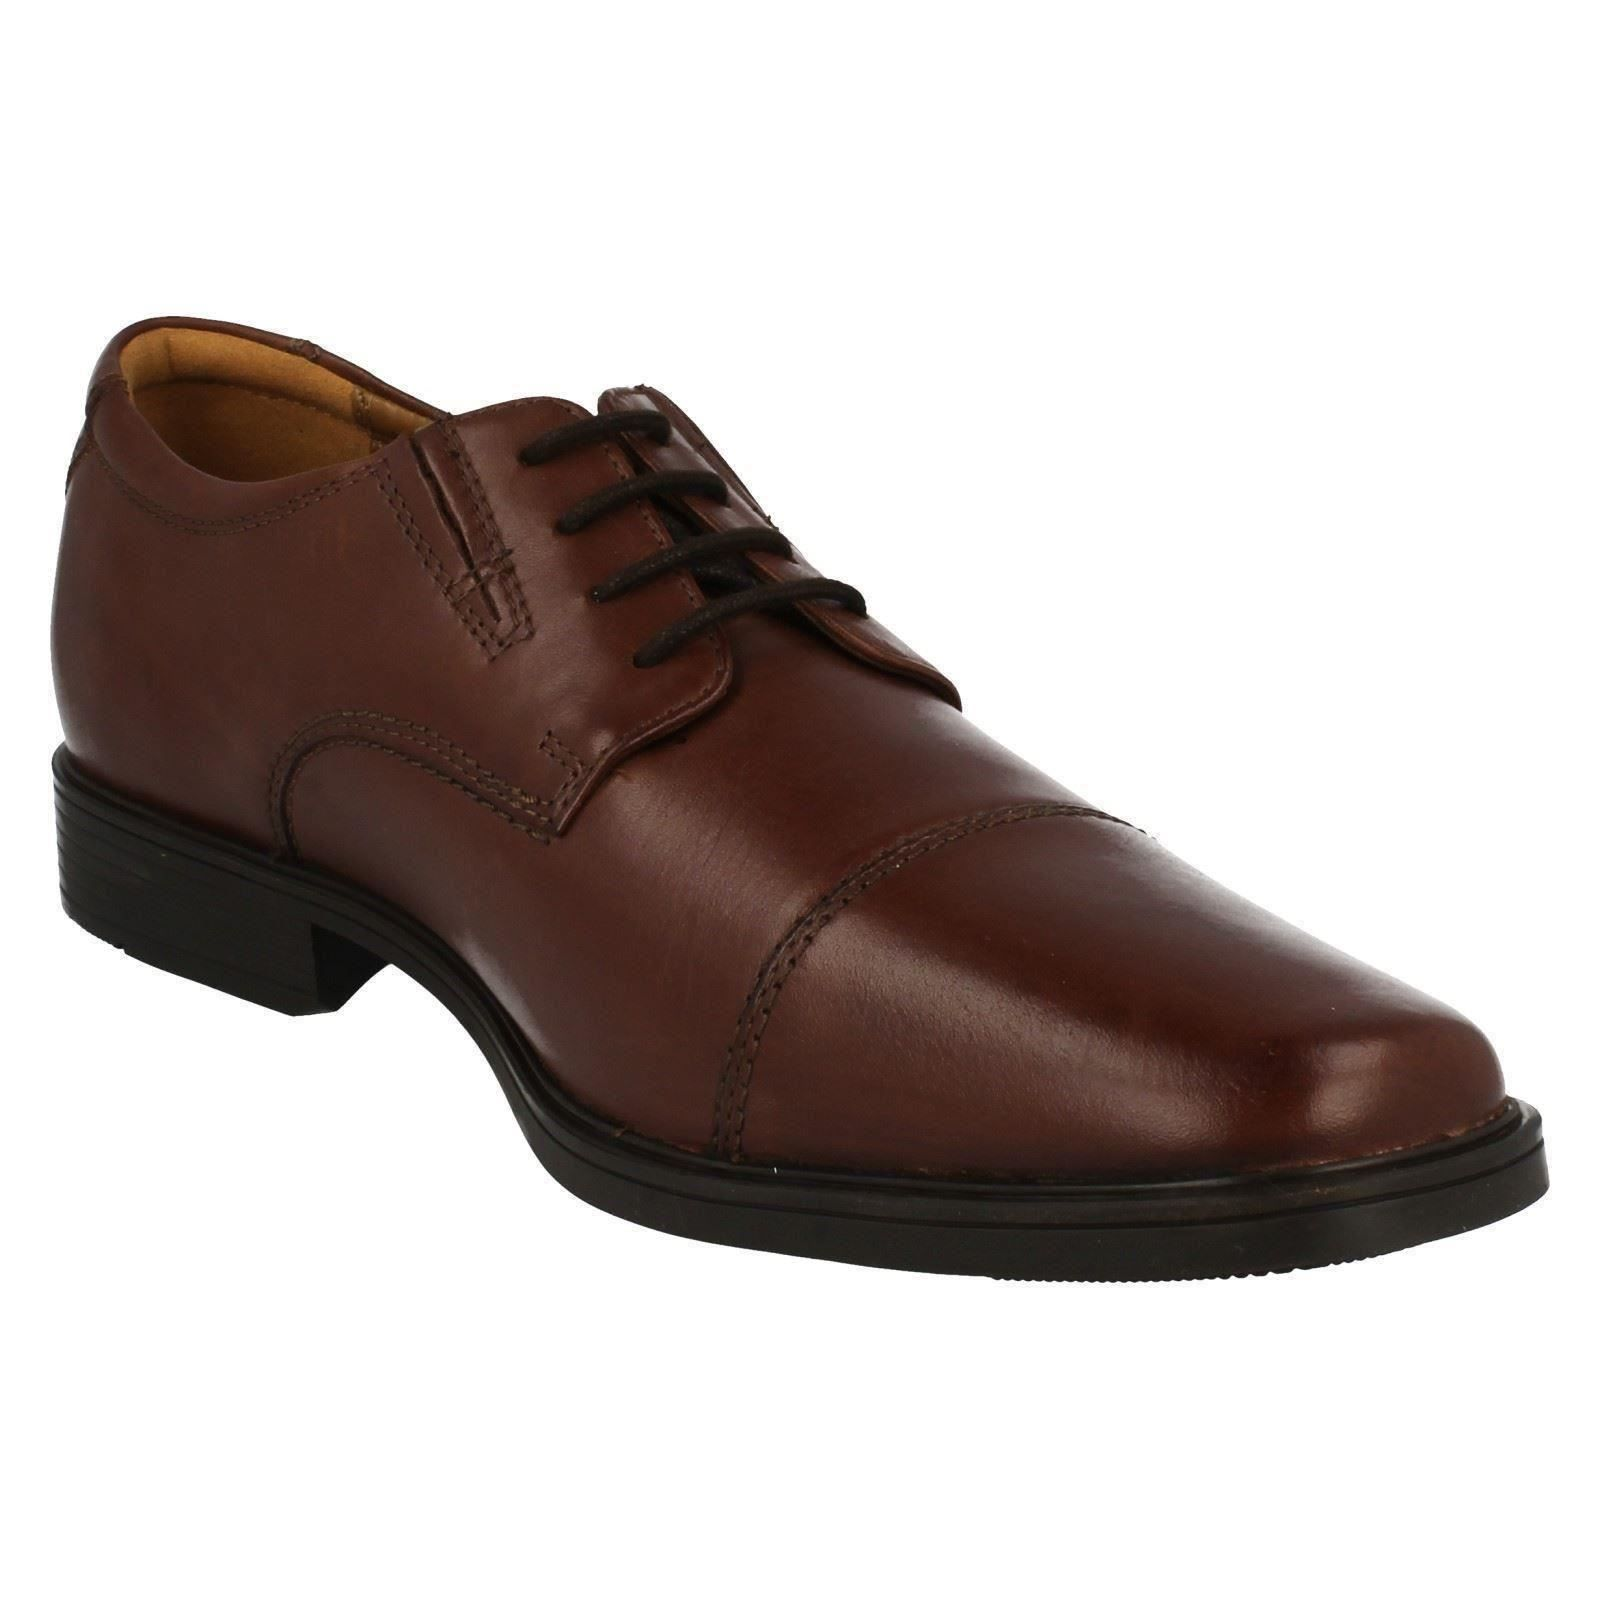 Mens-Clarks-Formal-Lace-Up-Shoes-Tilden-Cap thumbnail 12